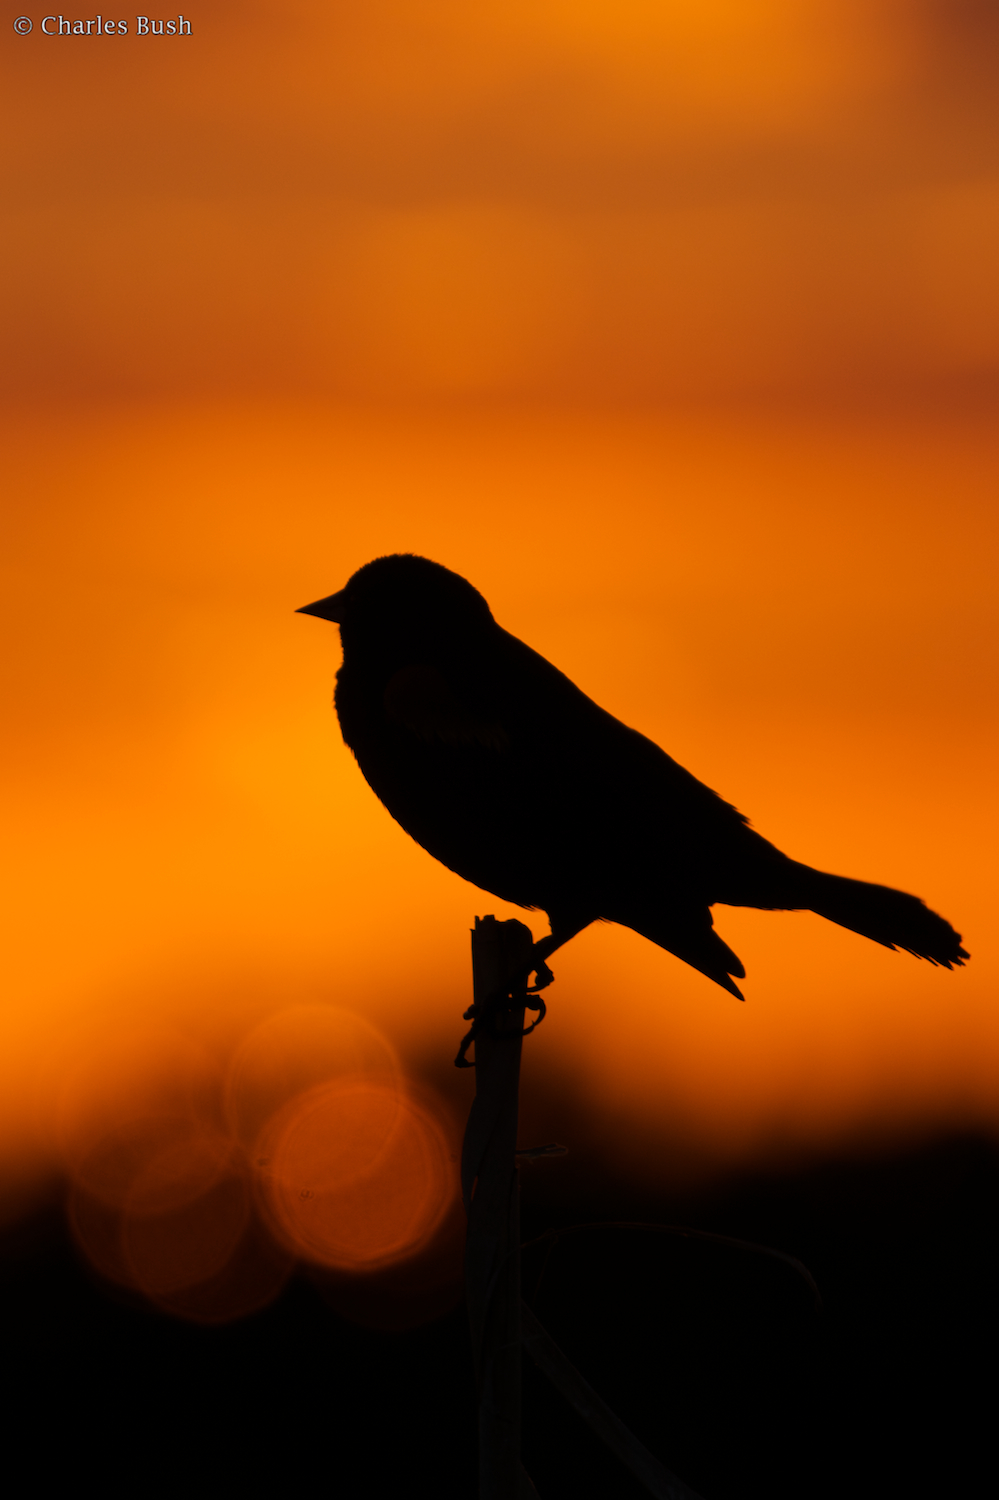 Redwing Blackbird at Sunset